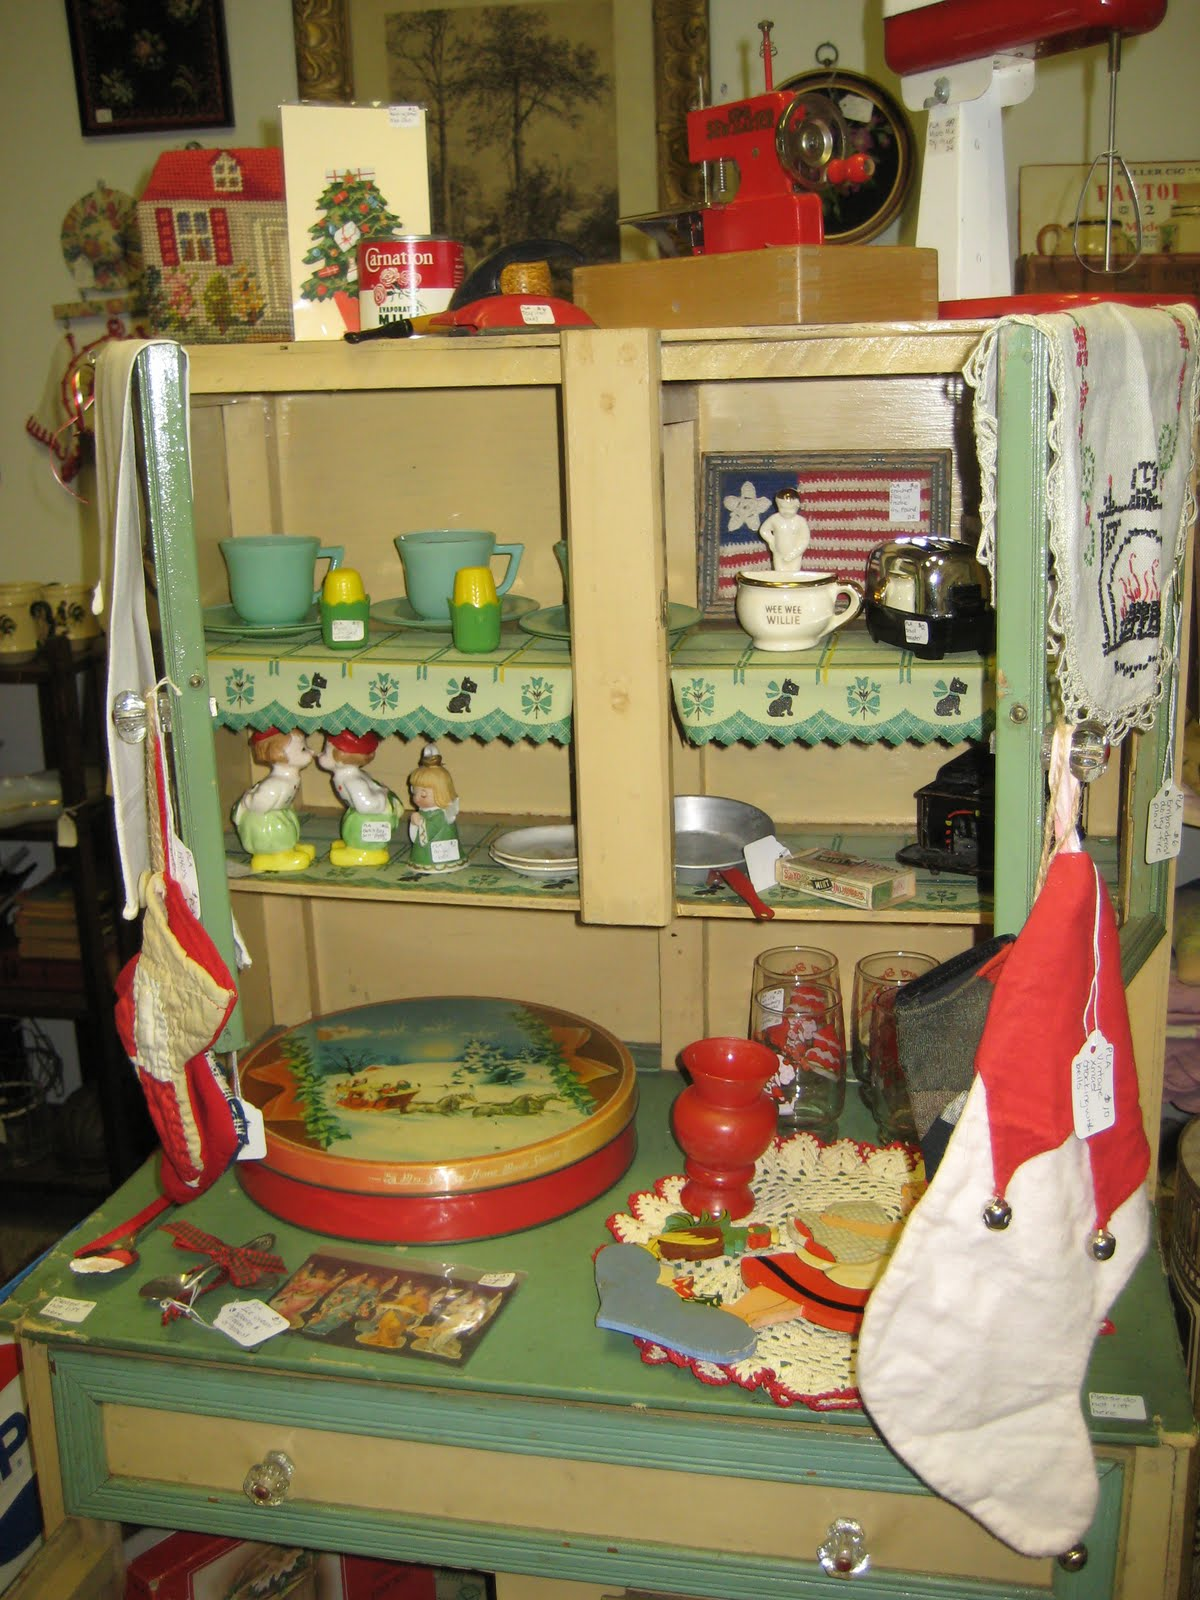 Doll Kitchen Cupboard Featured At Silk City Antiques in Manchester, CT